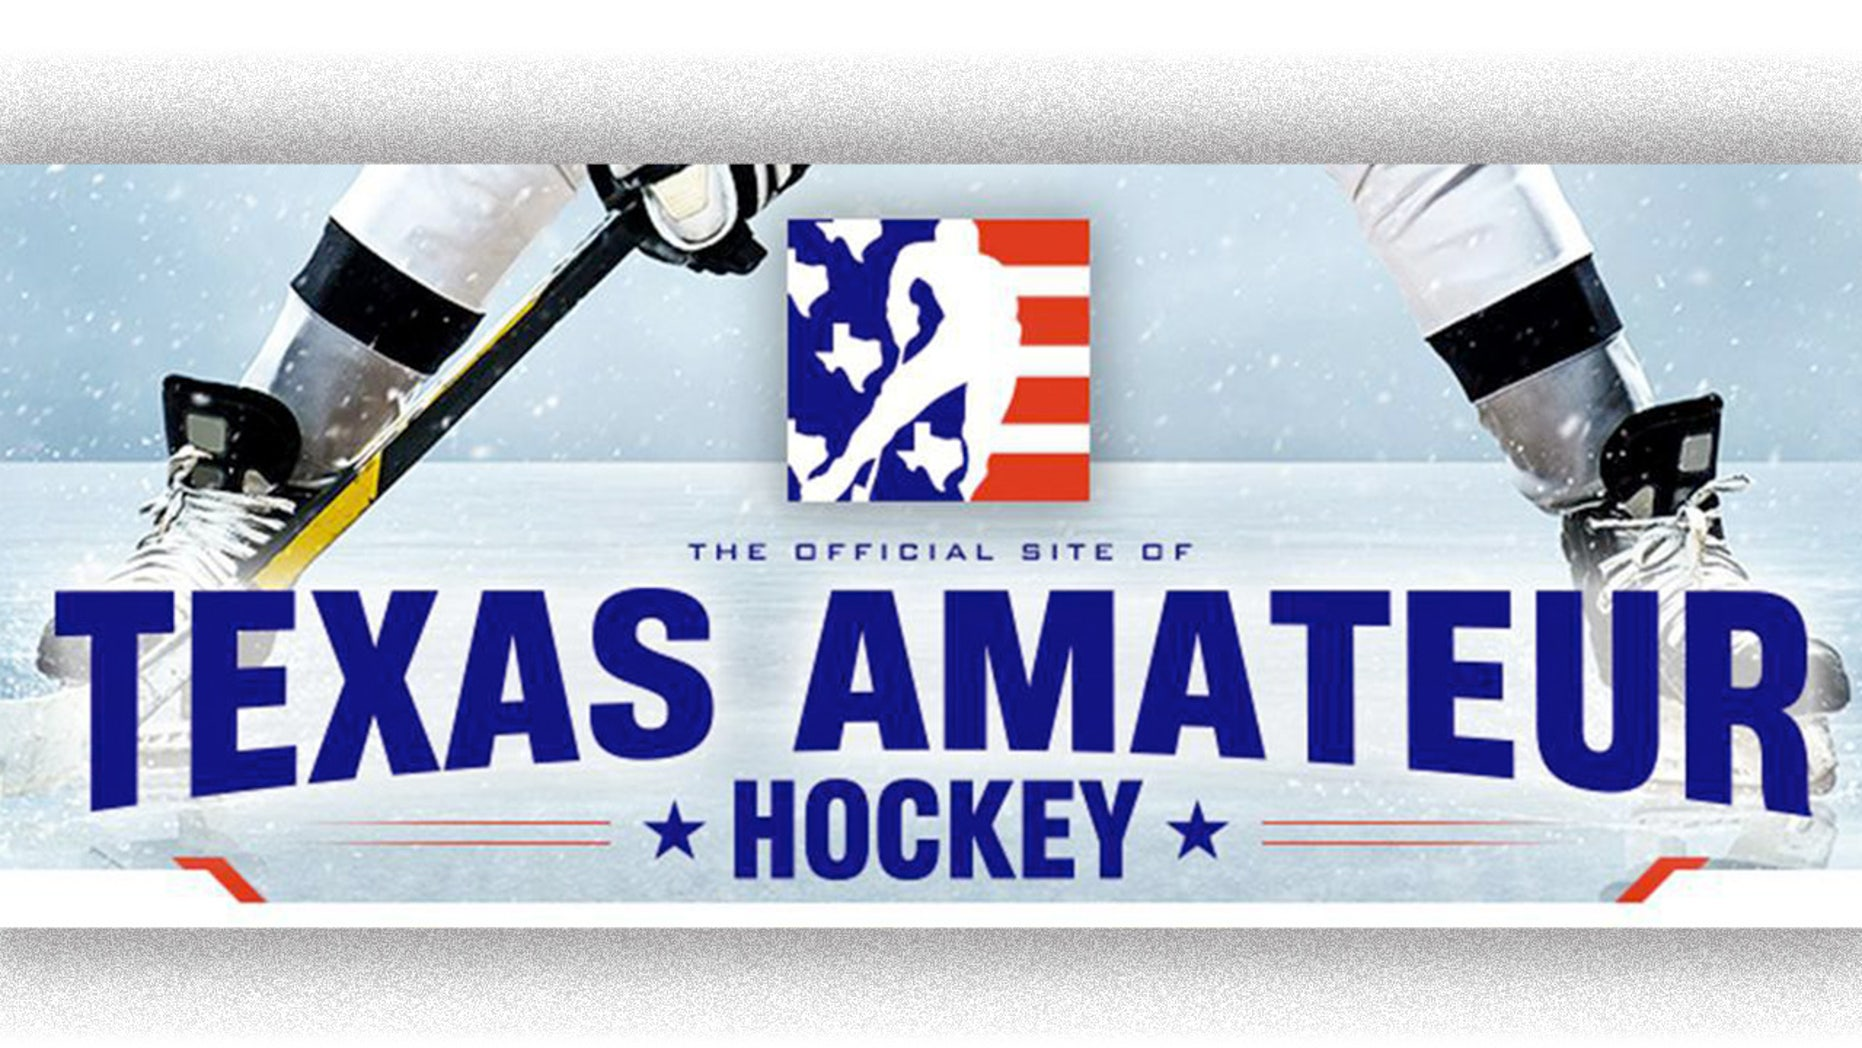 A player in a league sanctioned by the Texas Amateur Hockey Association has been suspended indefinitely following an incident that took place during a game this past weekend.